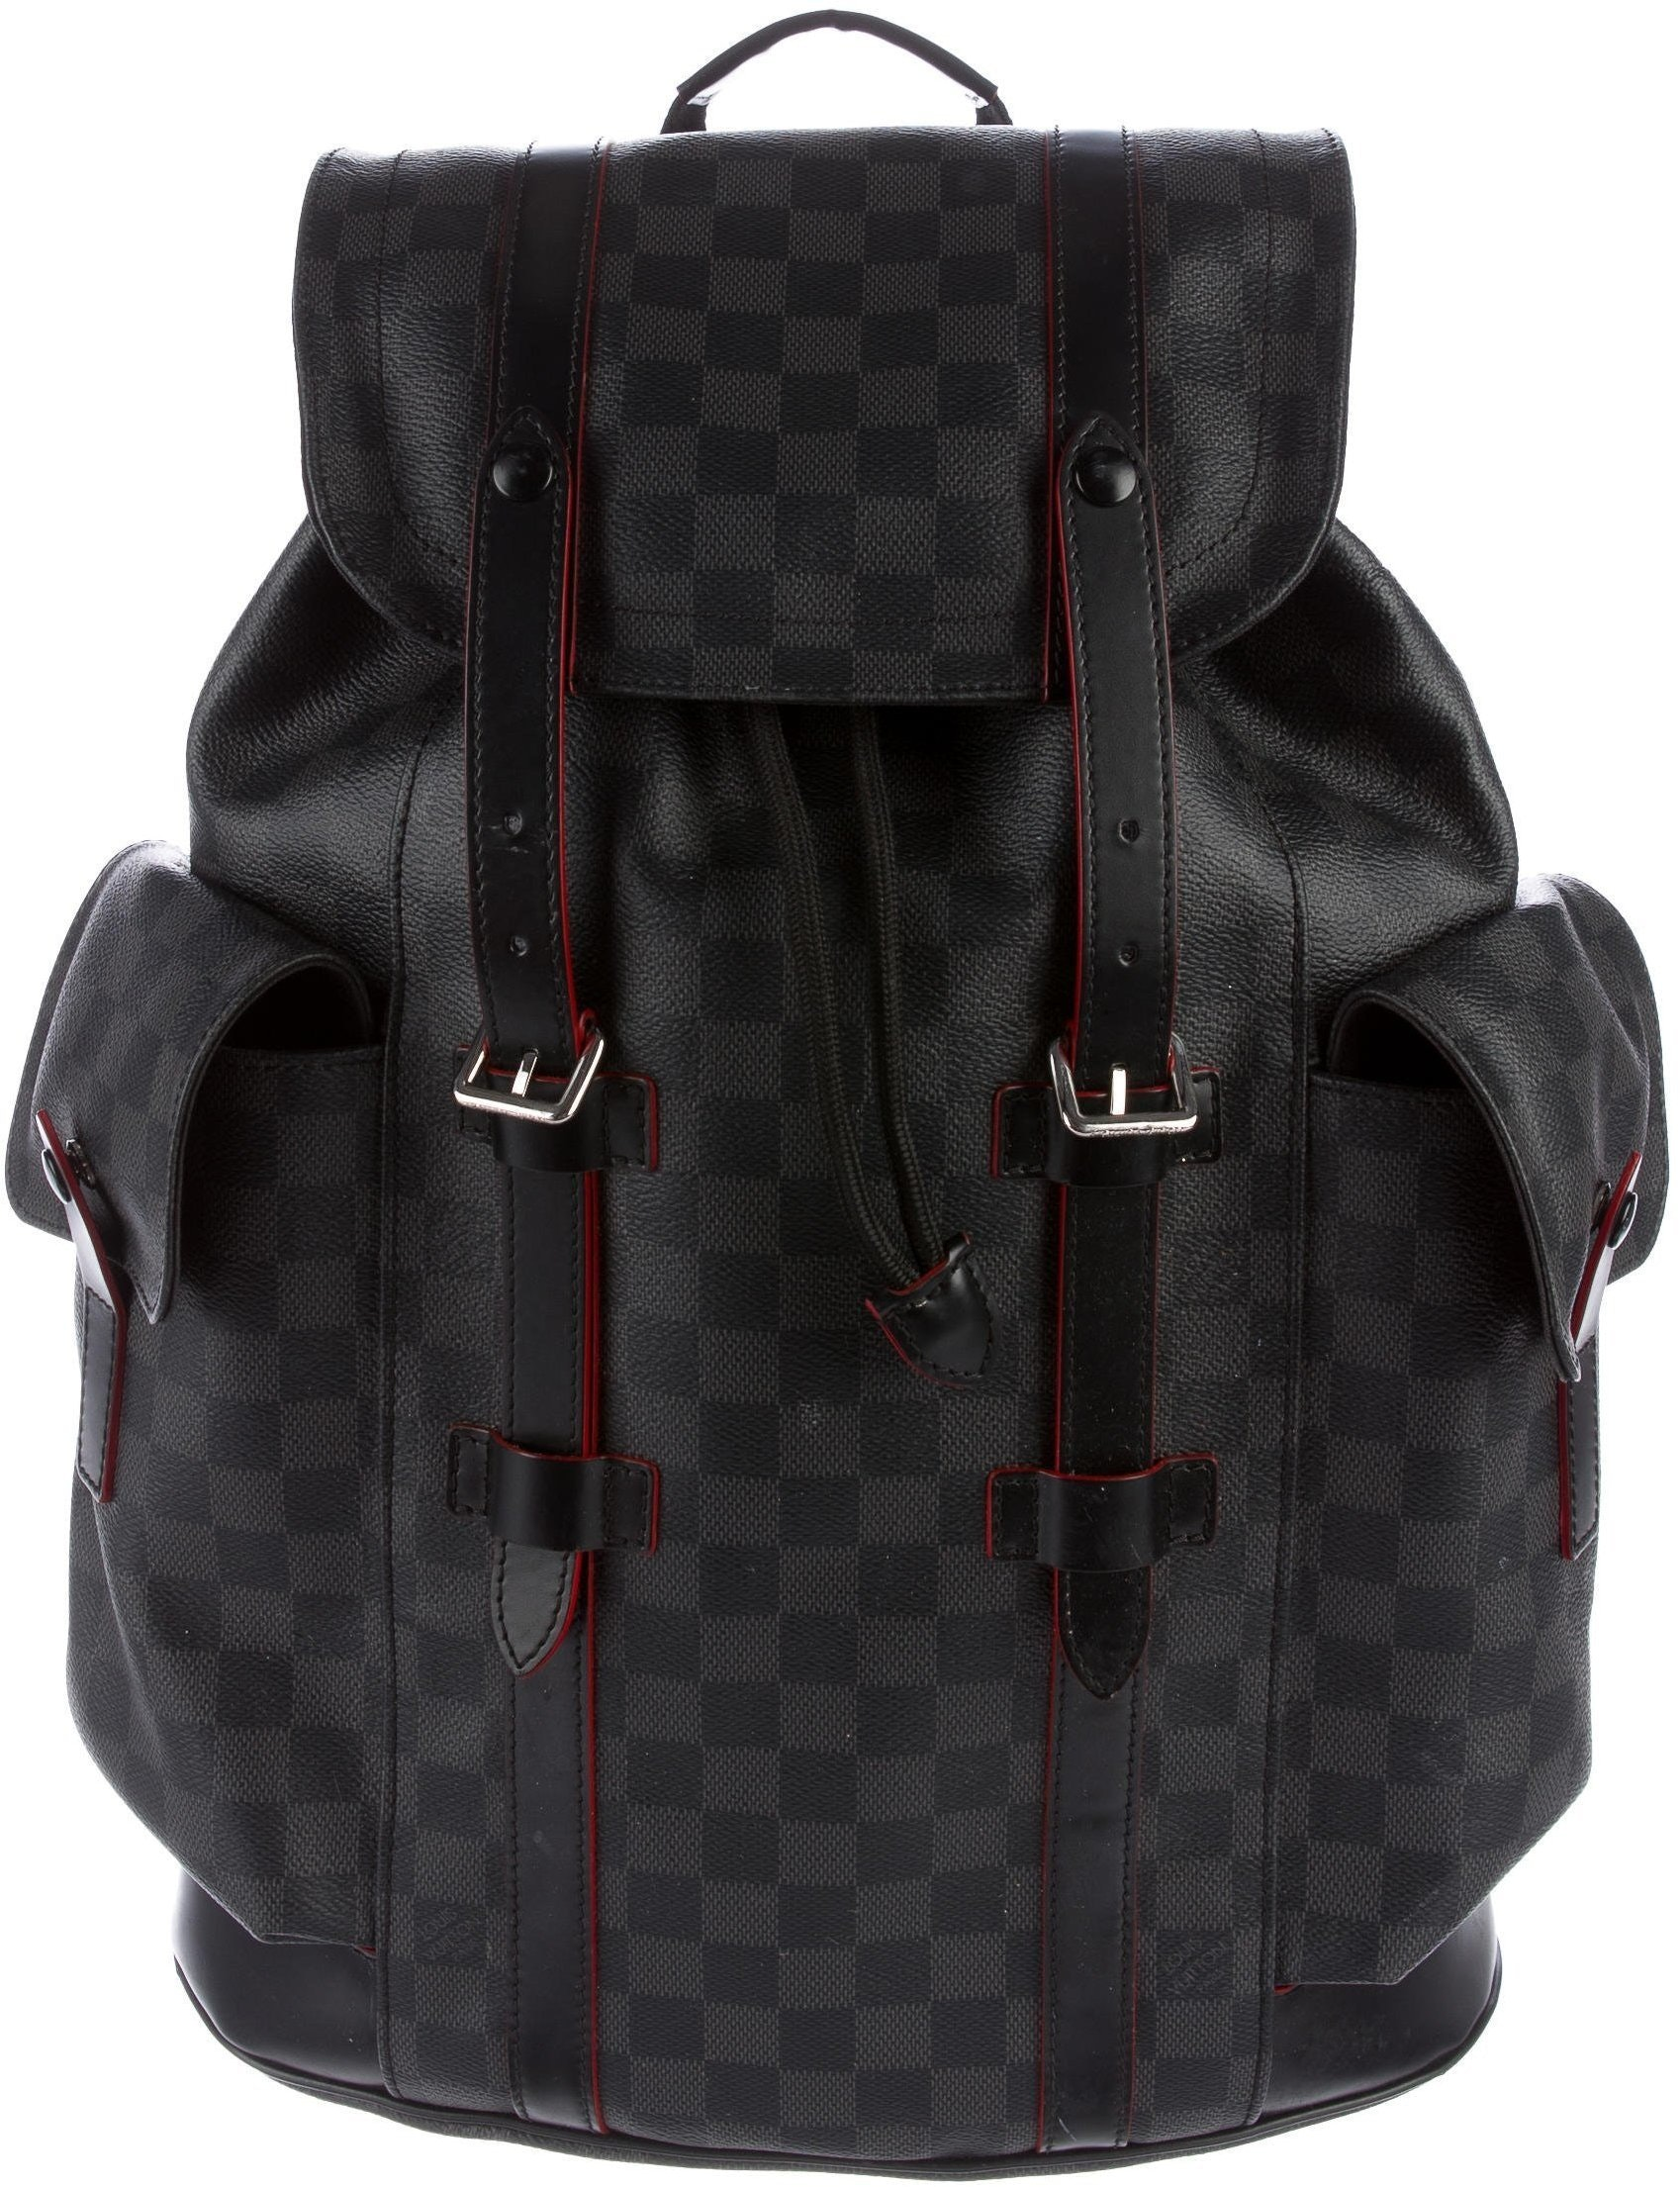 Louis Vuitton Christopher Backpack Red Trim Damier Graphite Grey